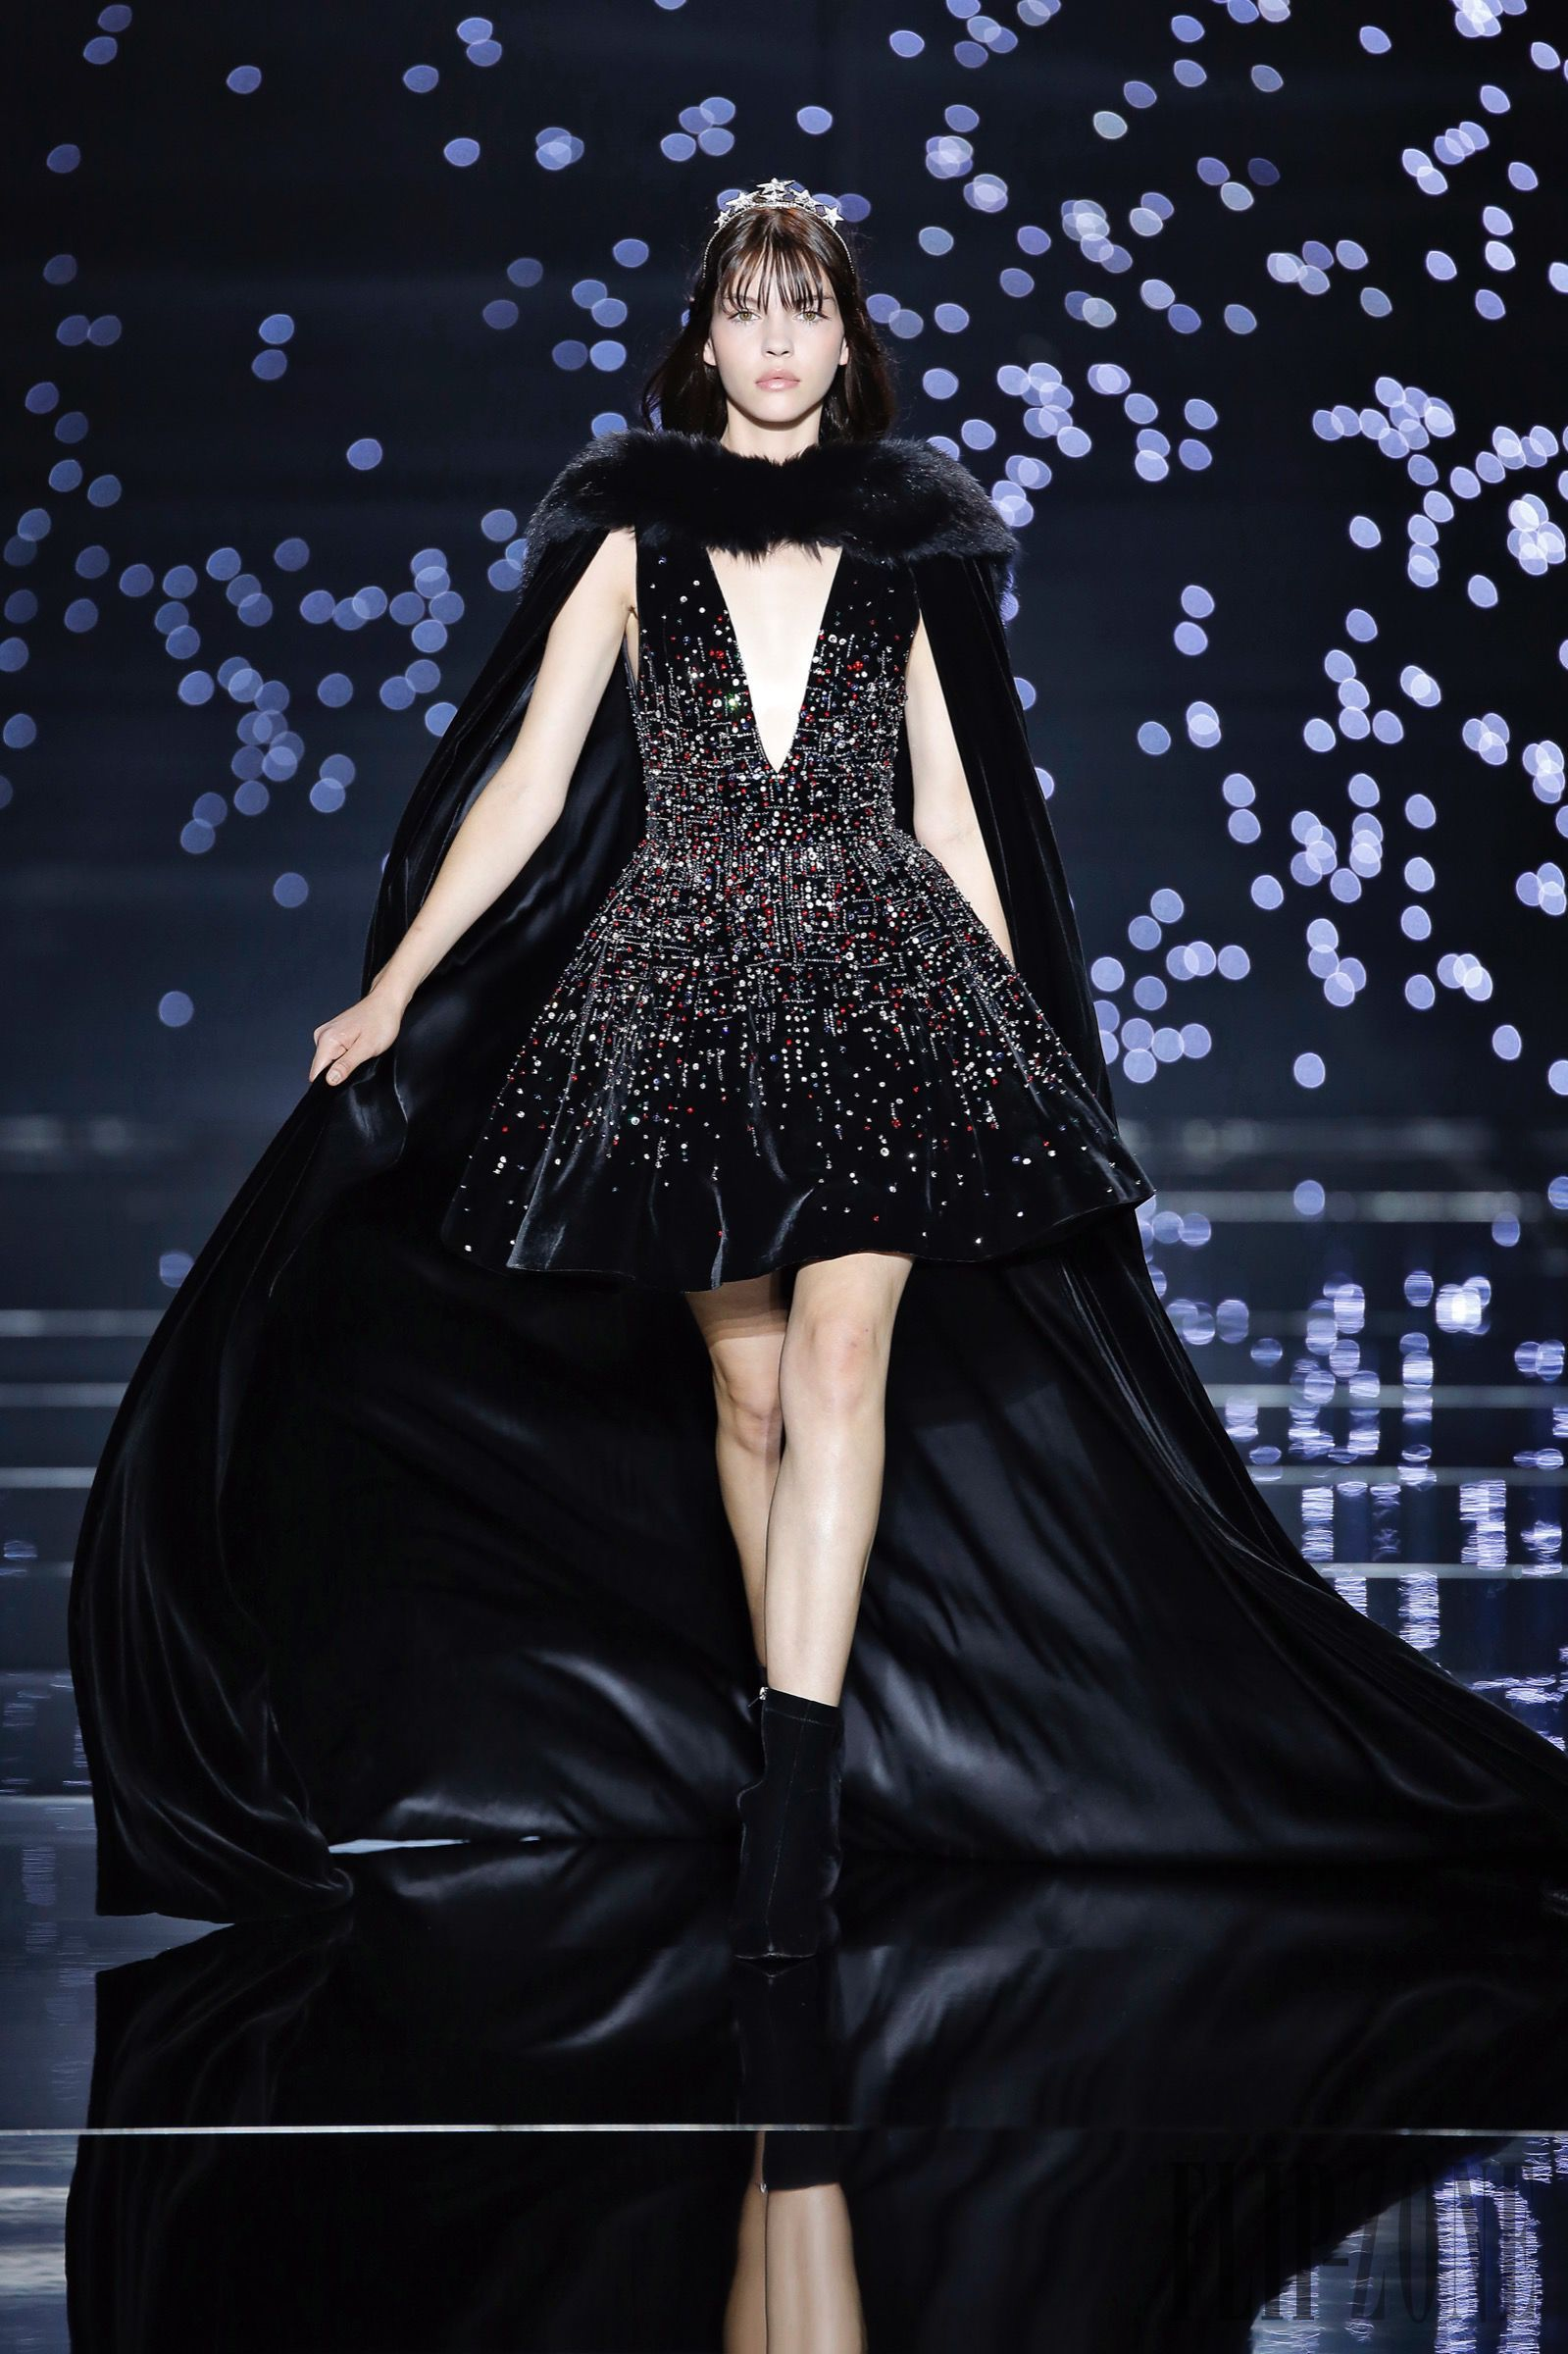 Zuhair Murad Fall-winter 2015-2016, official pictures - Couture - http://www.flip-zone.com/fashion/couture-1/maisons-de-couture/zuhair-murad-5714